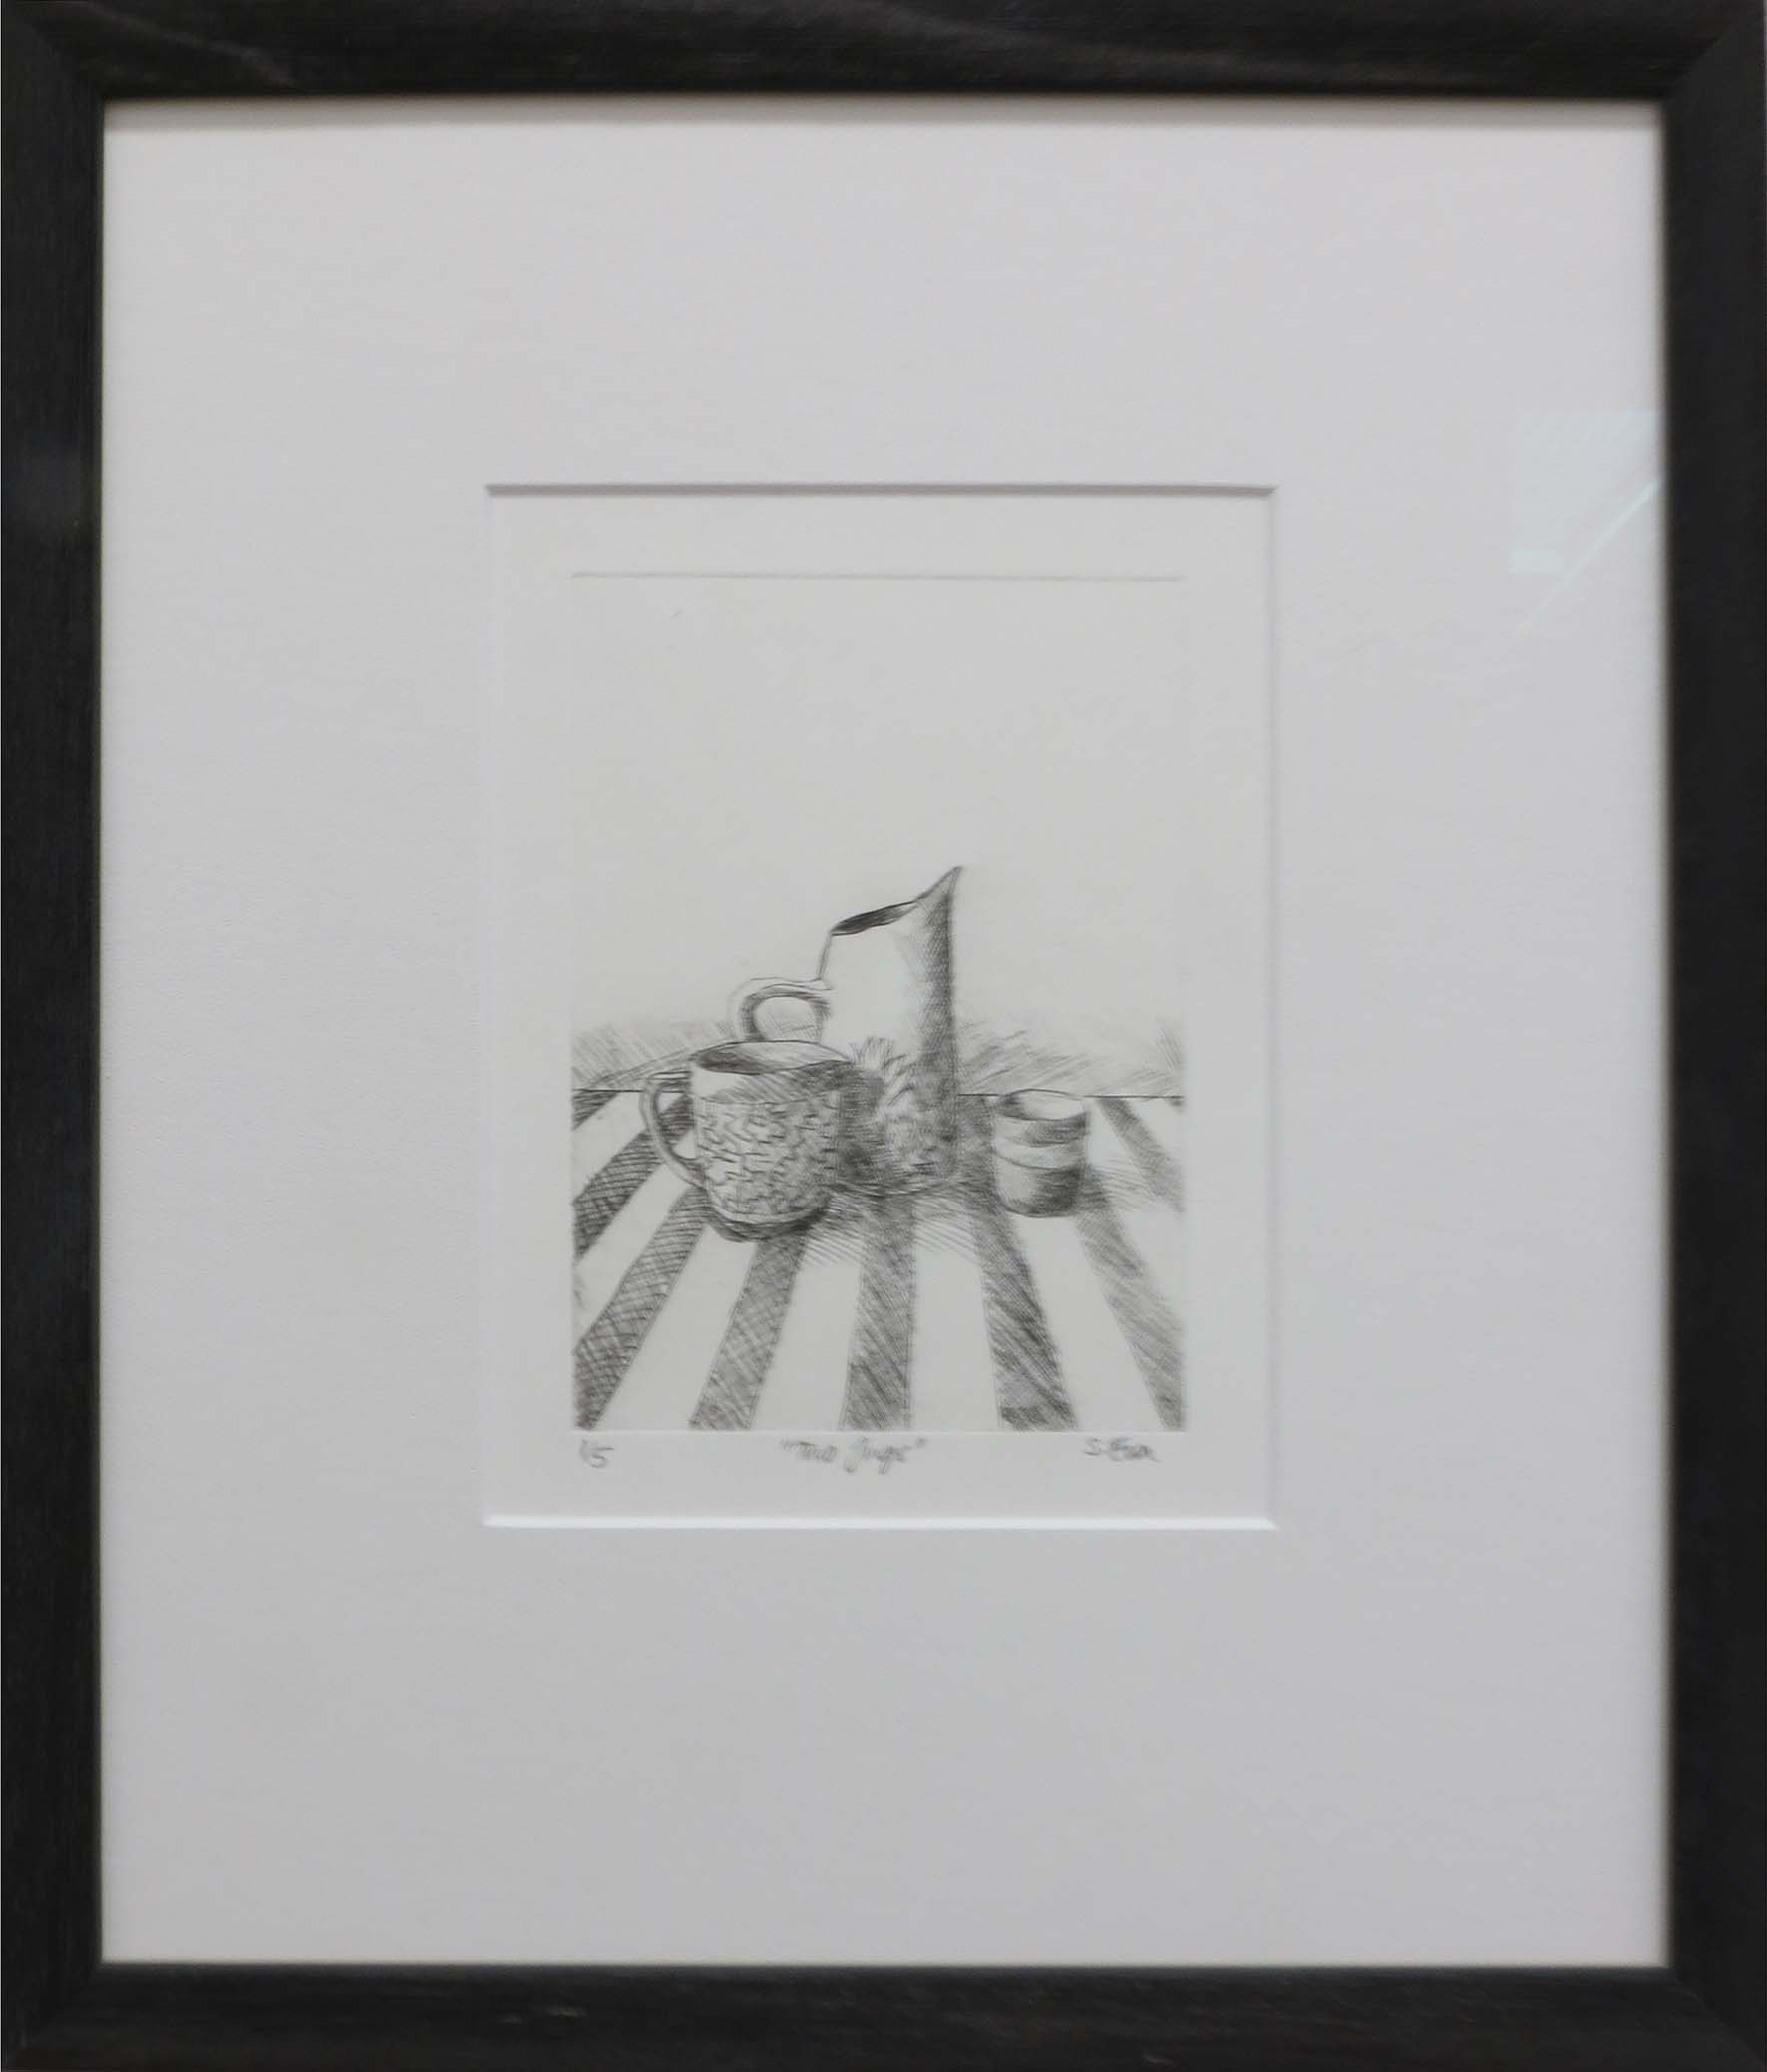 4. Sue Eva, 'Two Jugs', 2018, Drypoint etching, 15.5 x 11.5cm, $195